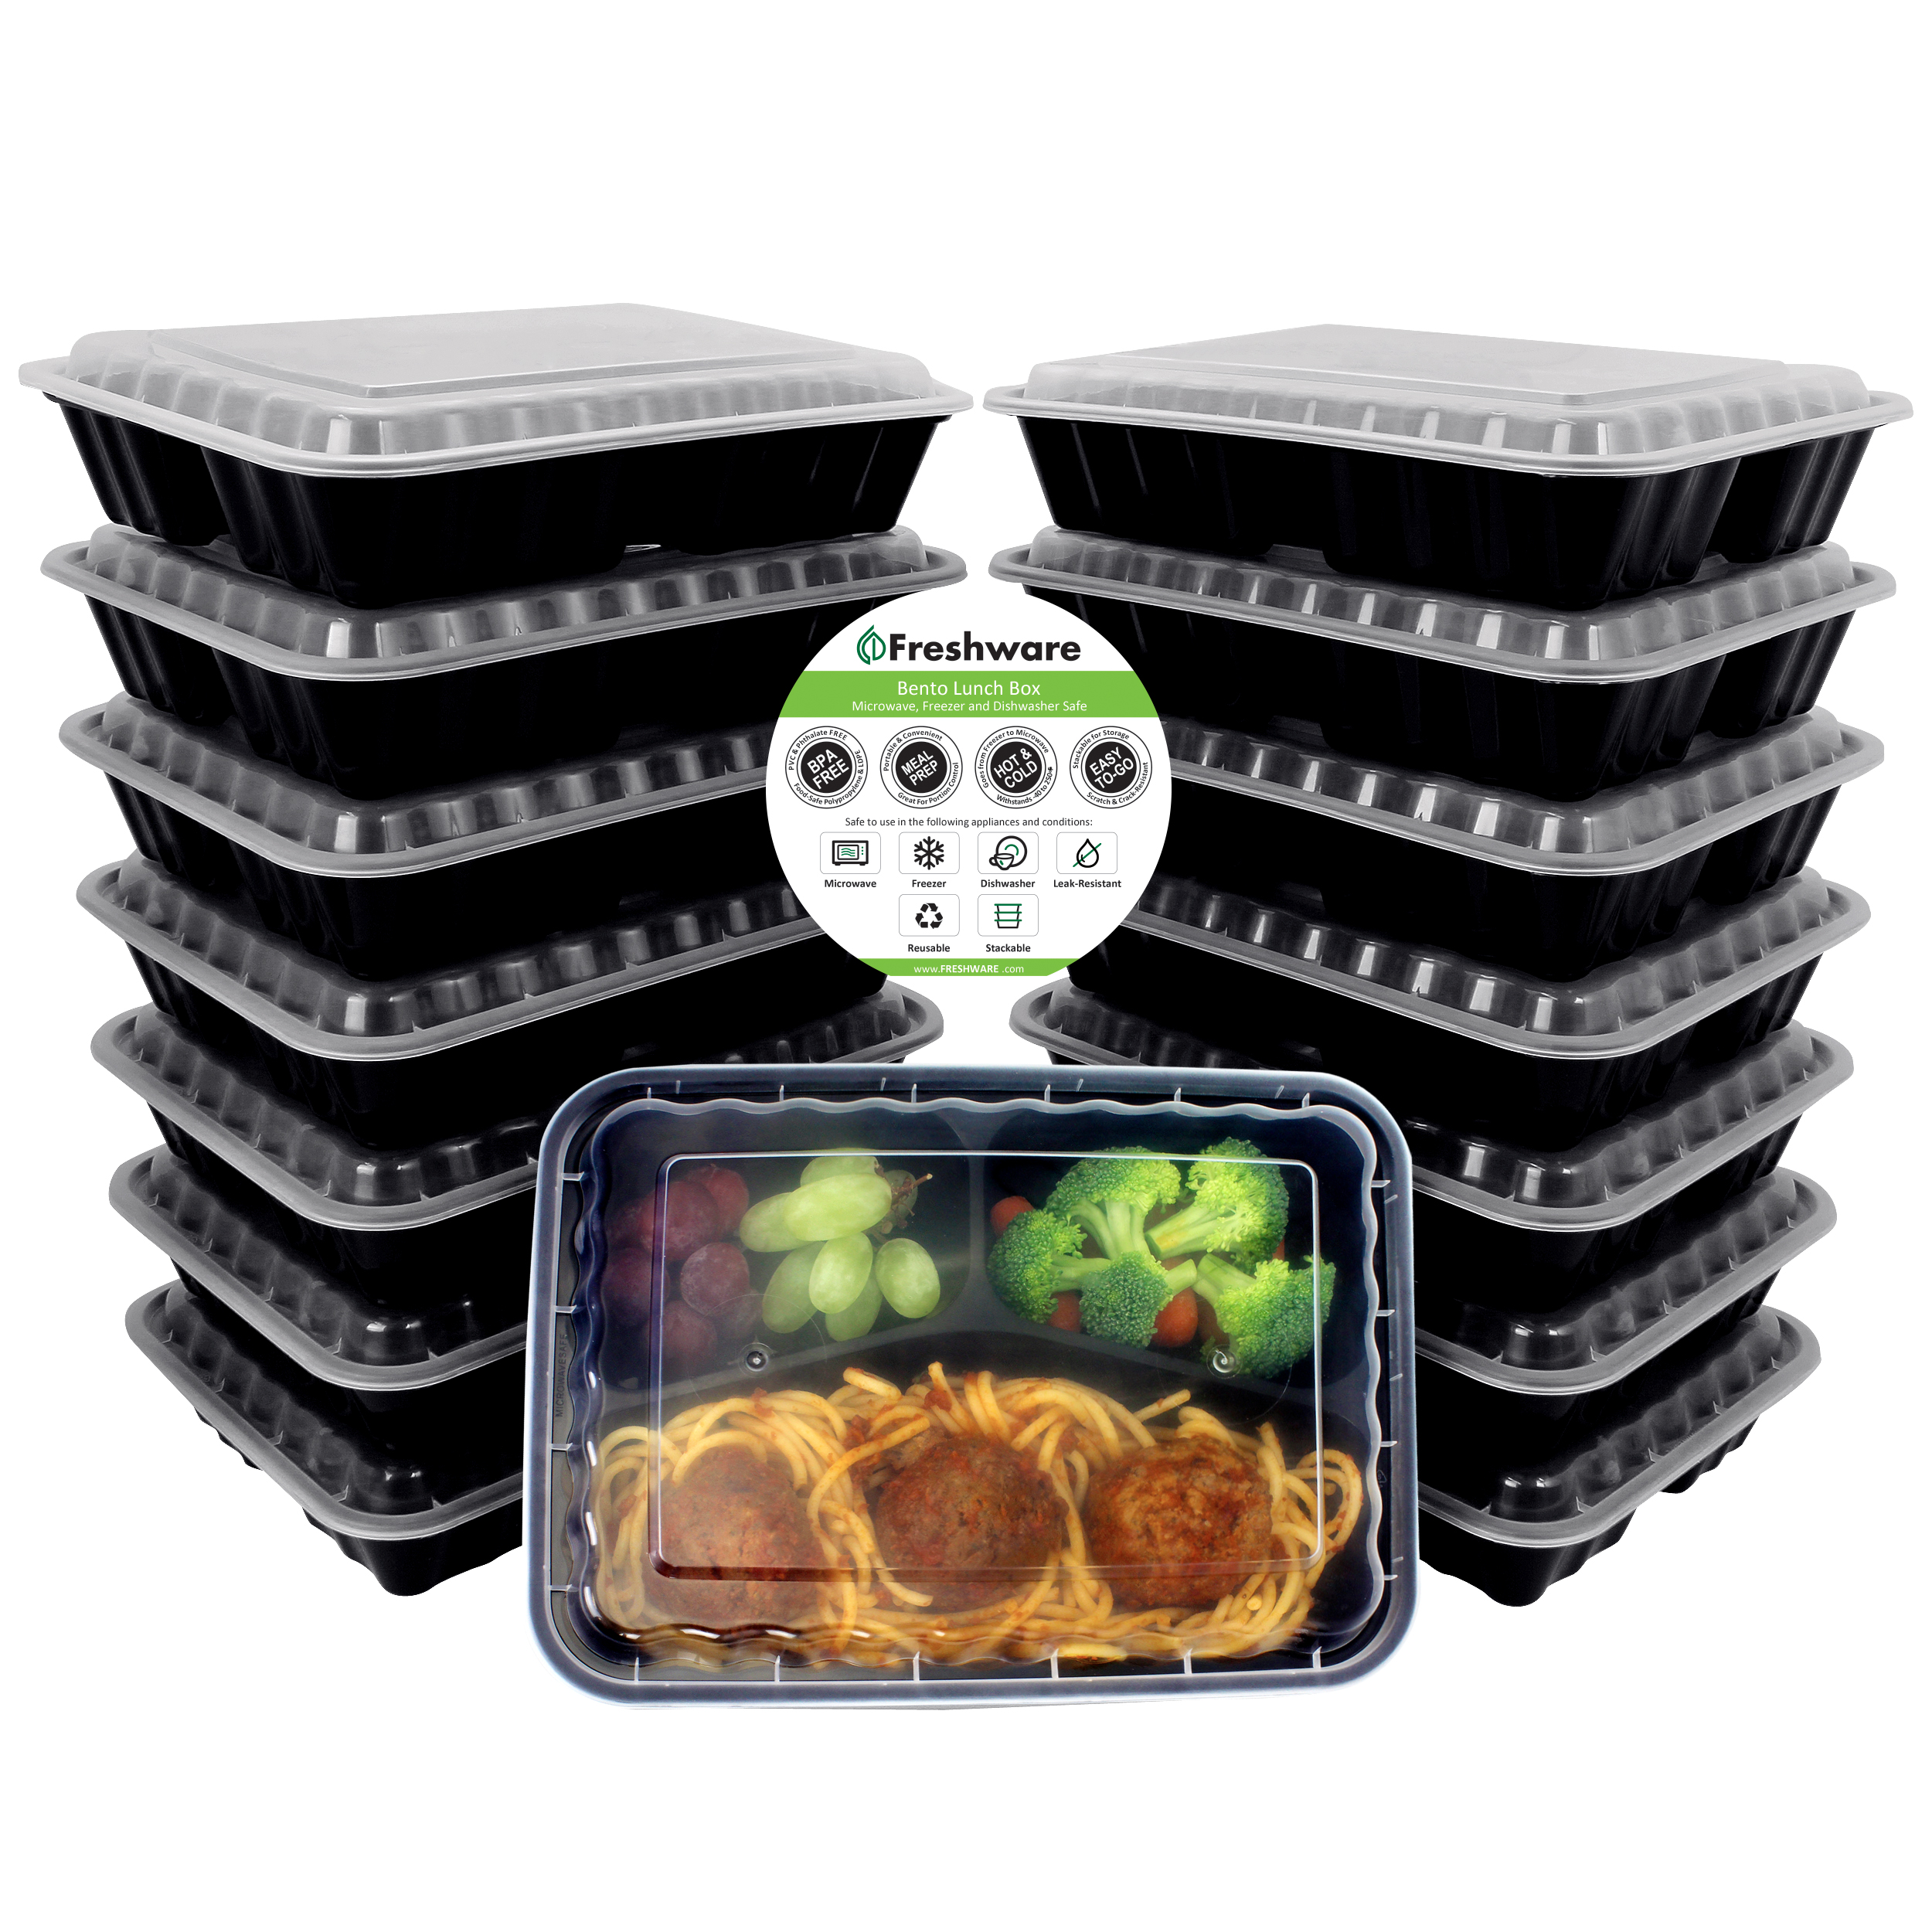 f4e6f0654129 Freshware 15-Pack 3 Compartment Bento Lunch Boxes with Lids - Stackable  Reusable Microwave Dishwasher & Freezer Safe - Meal Prep Portion Control 21  ...